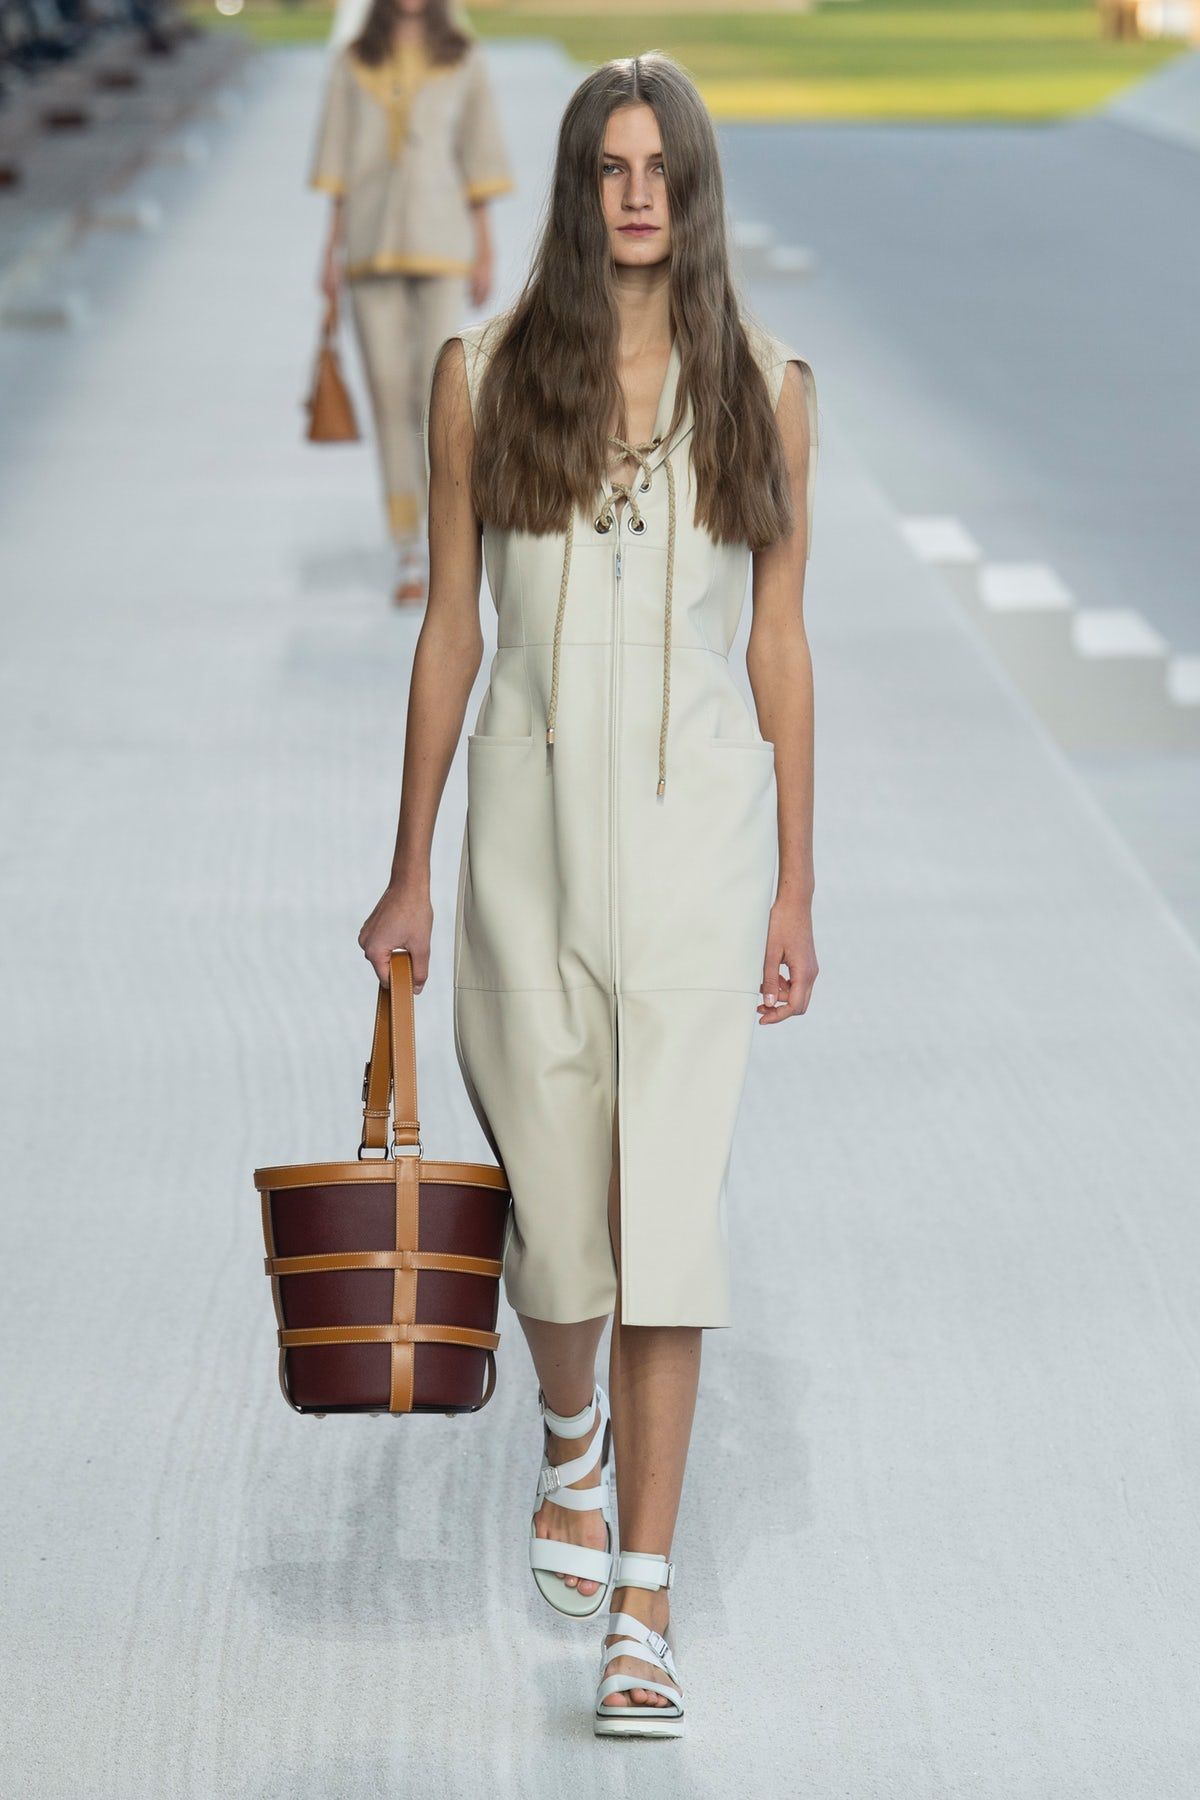 Hermès Goes for the Great Outdoors